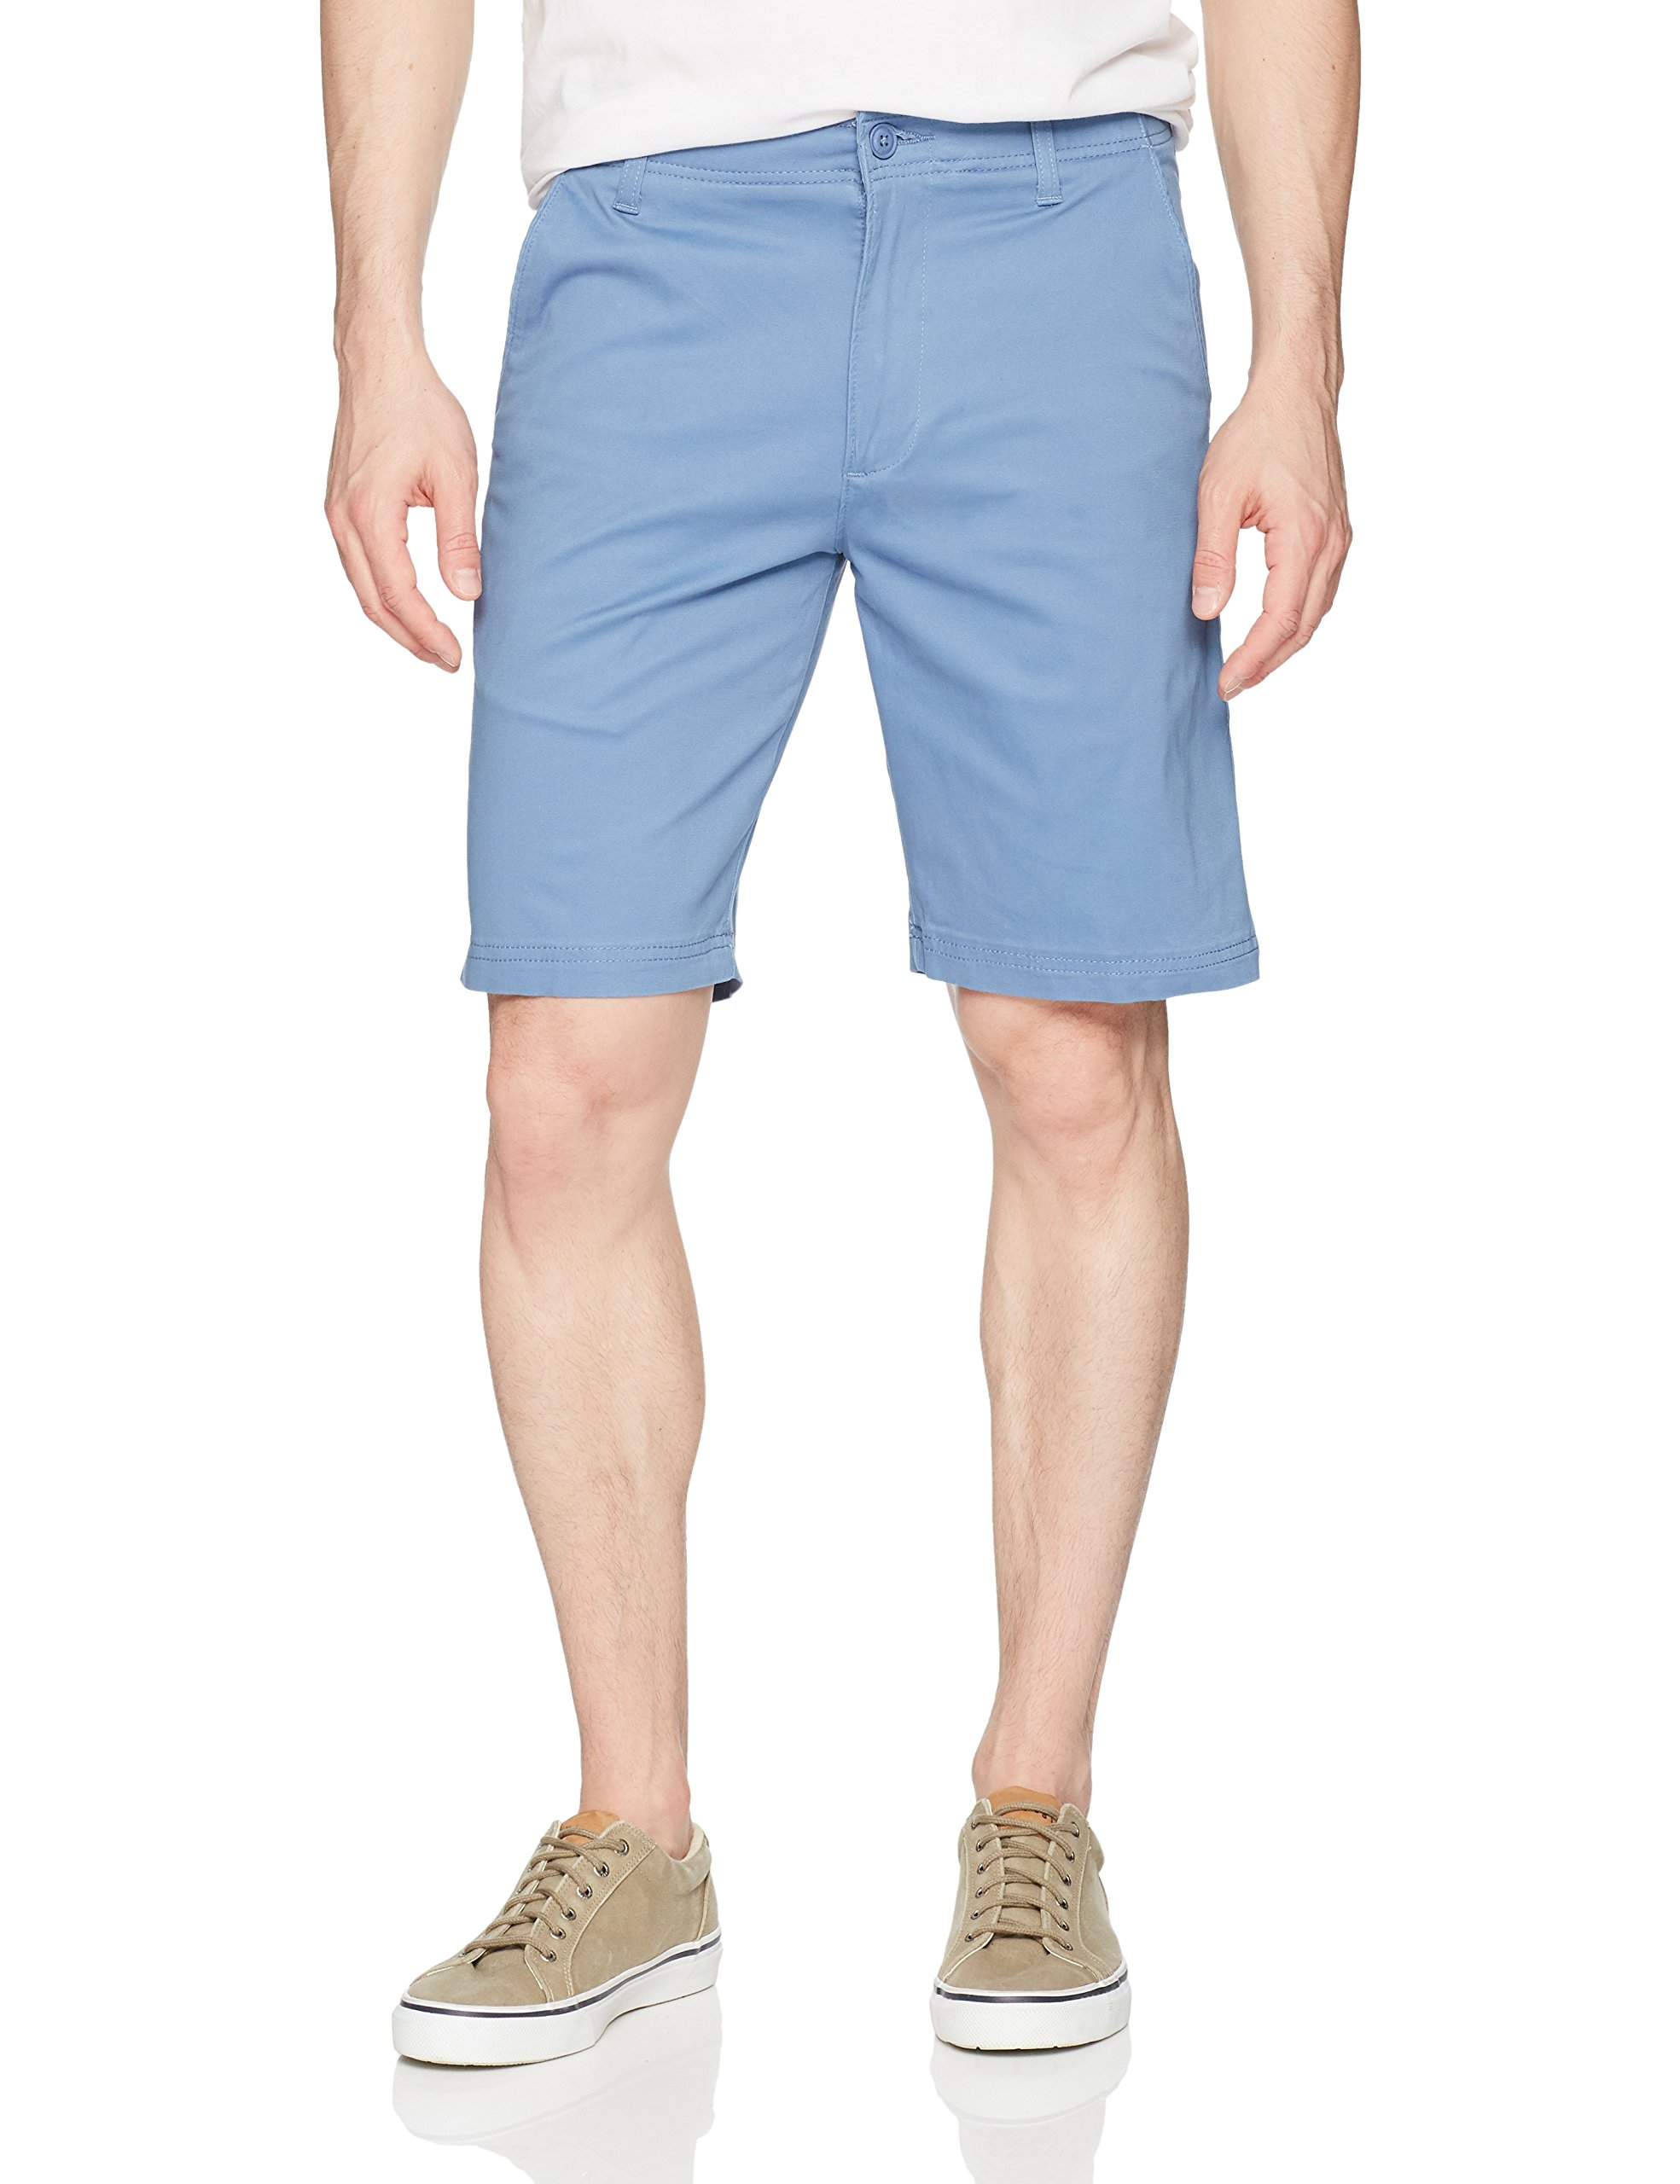 LEE Men's Performance Series Extreme Comfort Short, Coronet Blue, 34